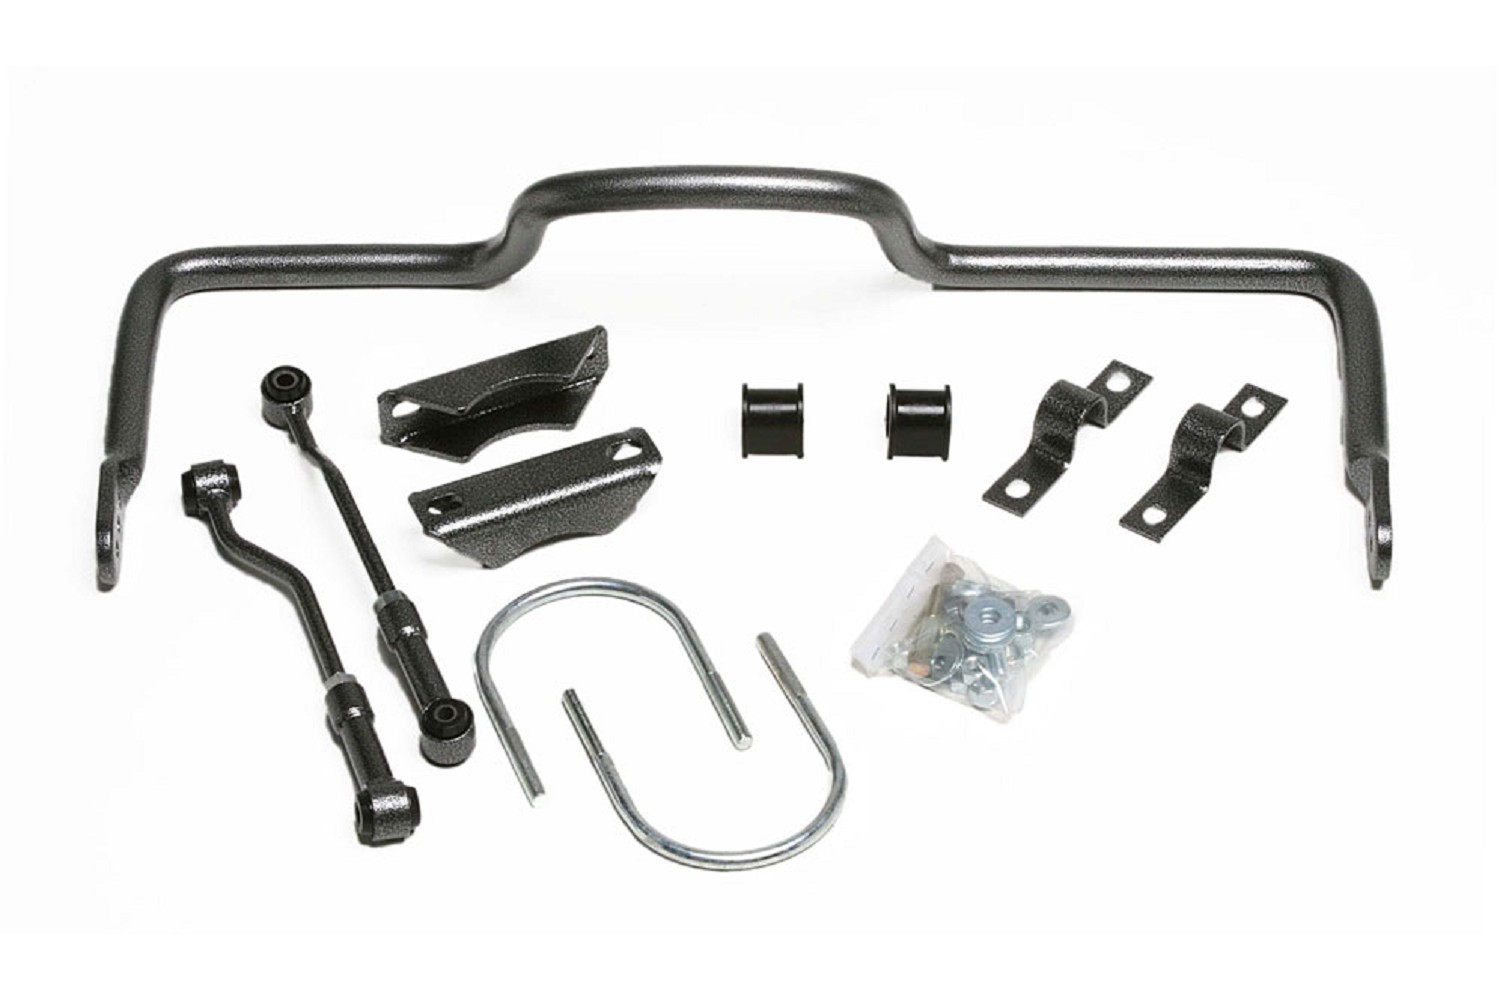 Hellwig Adjustable 1999 2010 Ford F250 F350 4wd 2wd Rear Sway 2000 F 250 Bar Link Bushings 1 4 Diameter 99 10